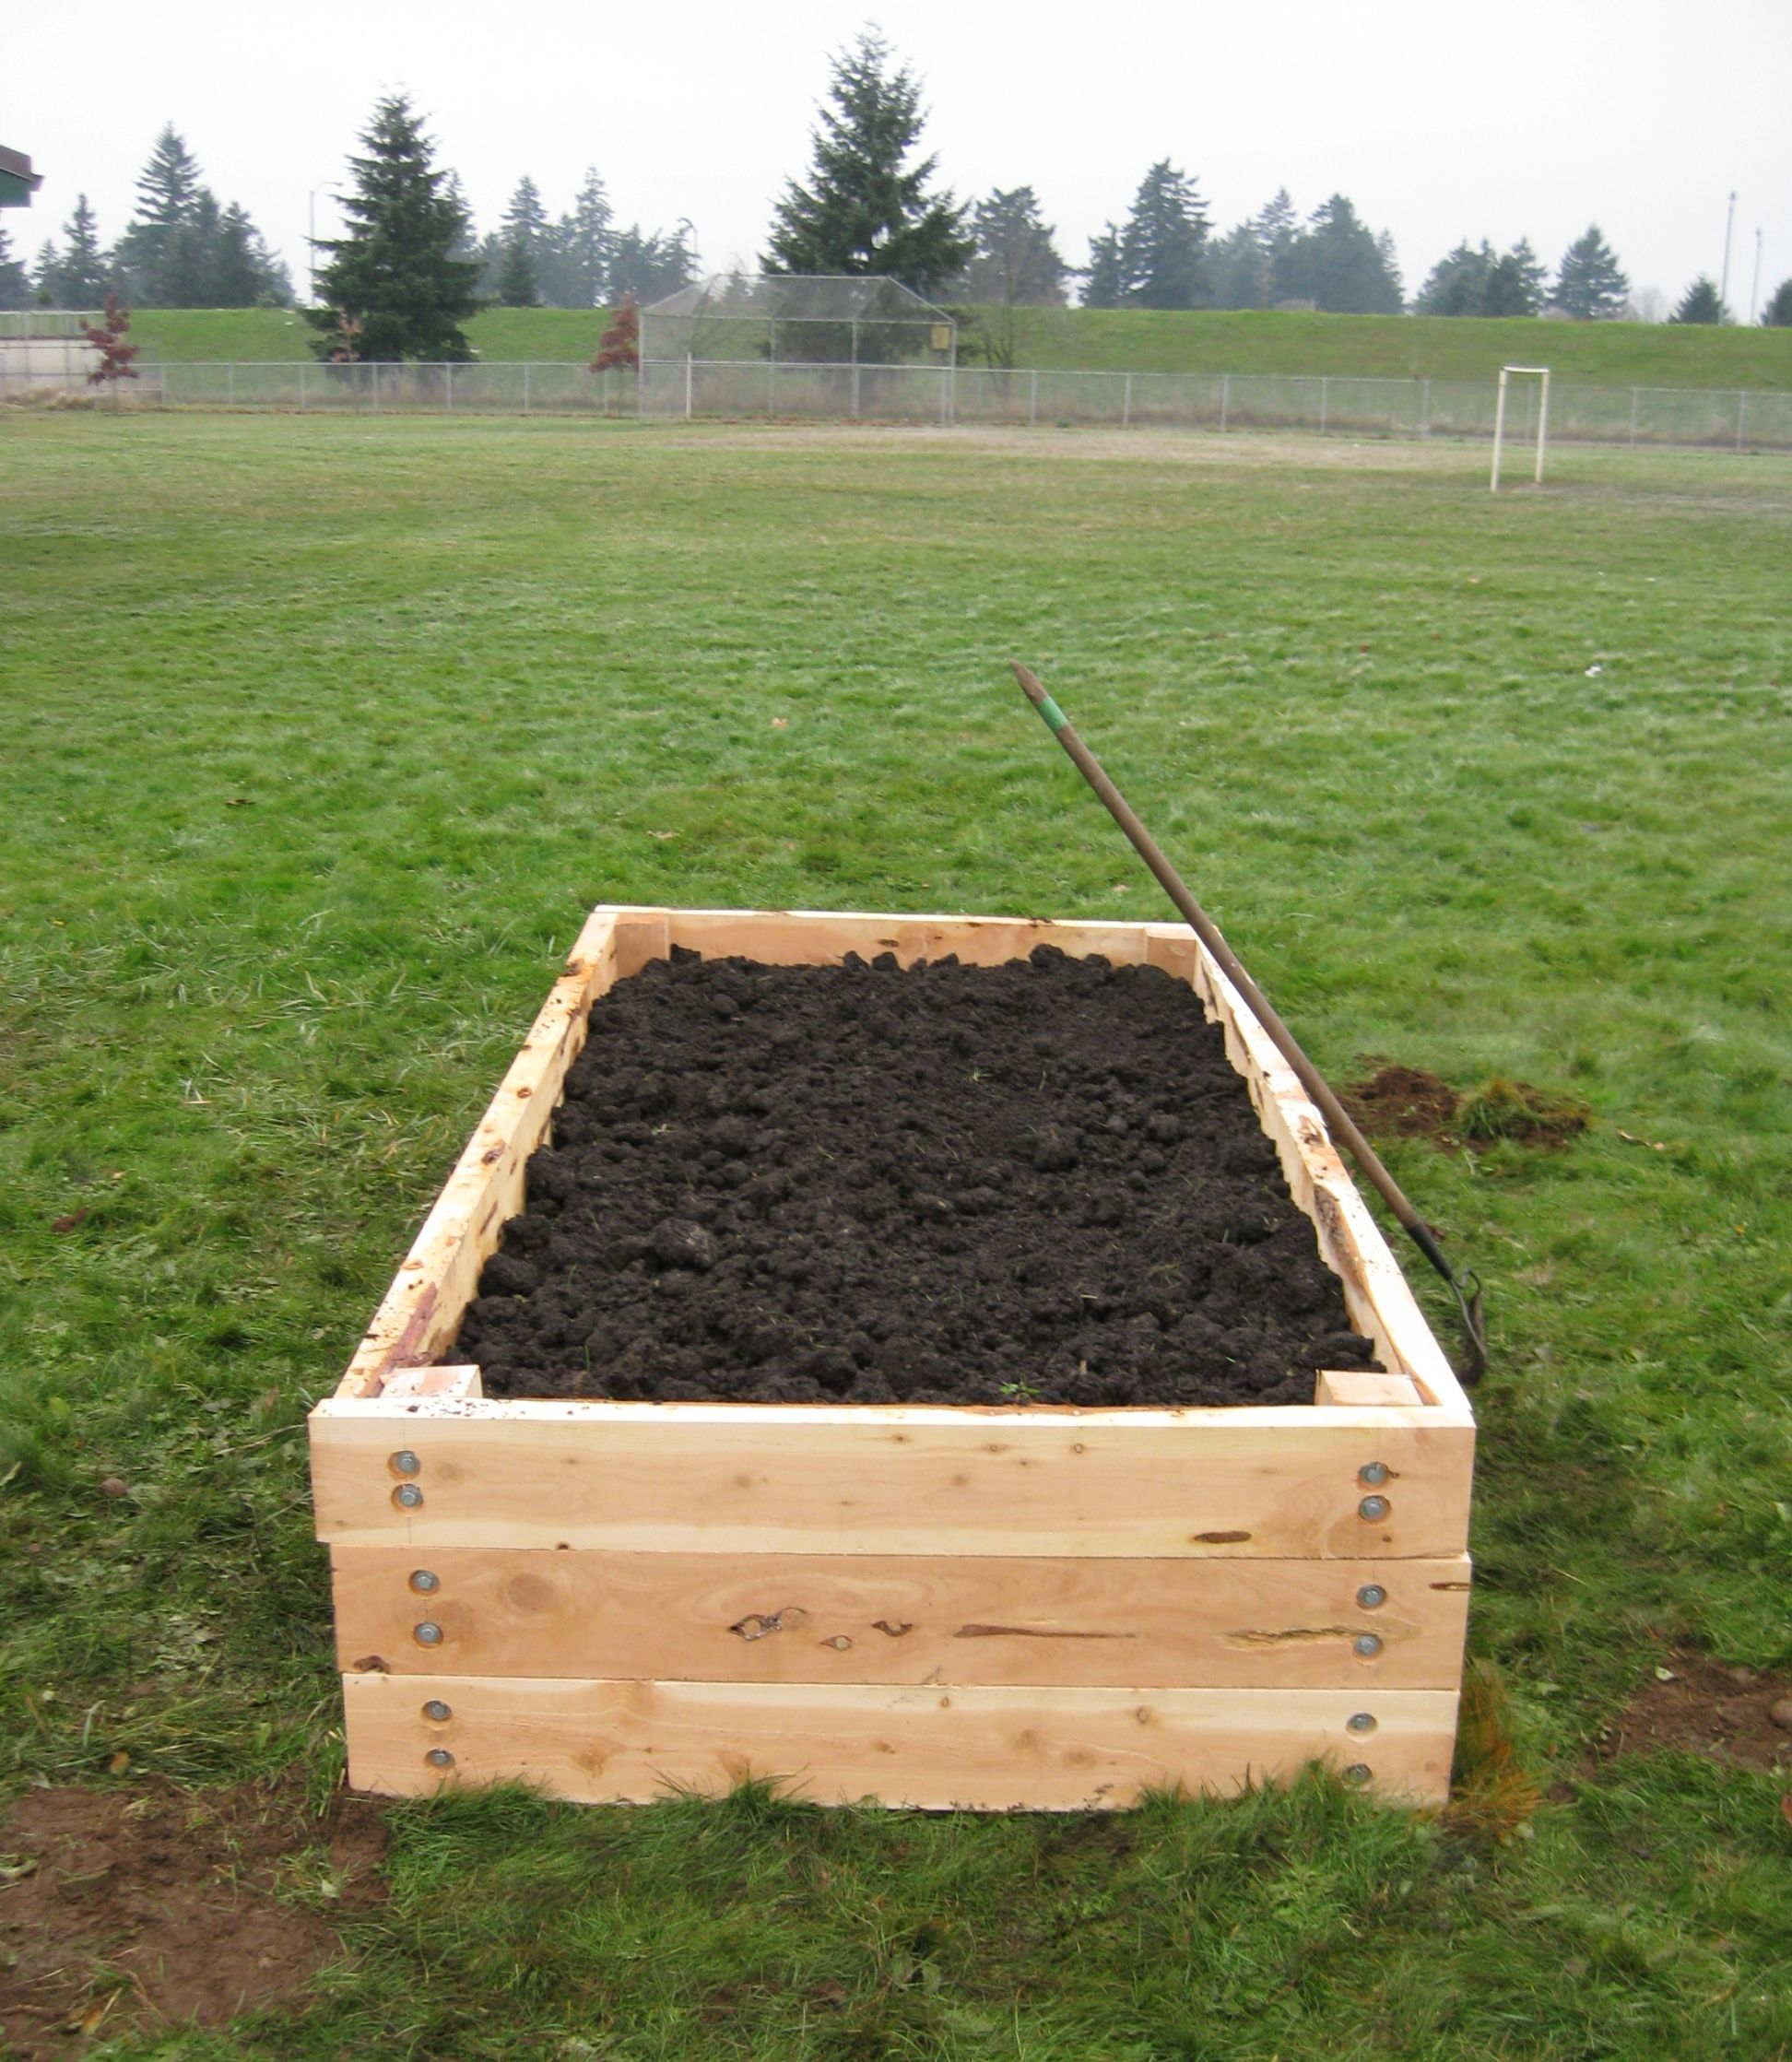 A Simple Raised Bed Built With 2x6 And 4x4 Juniper For An